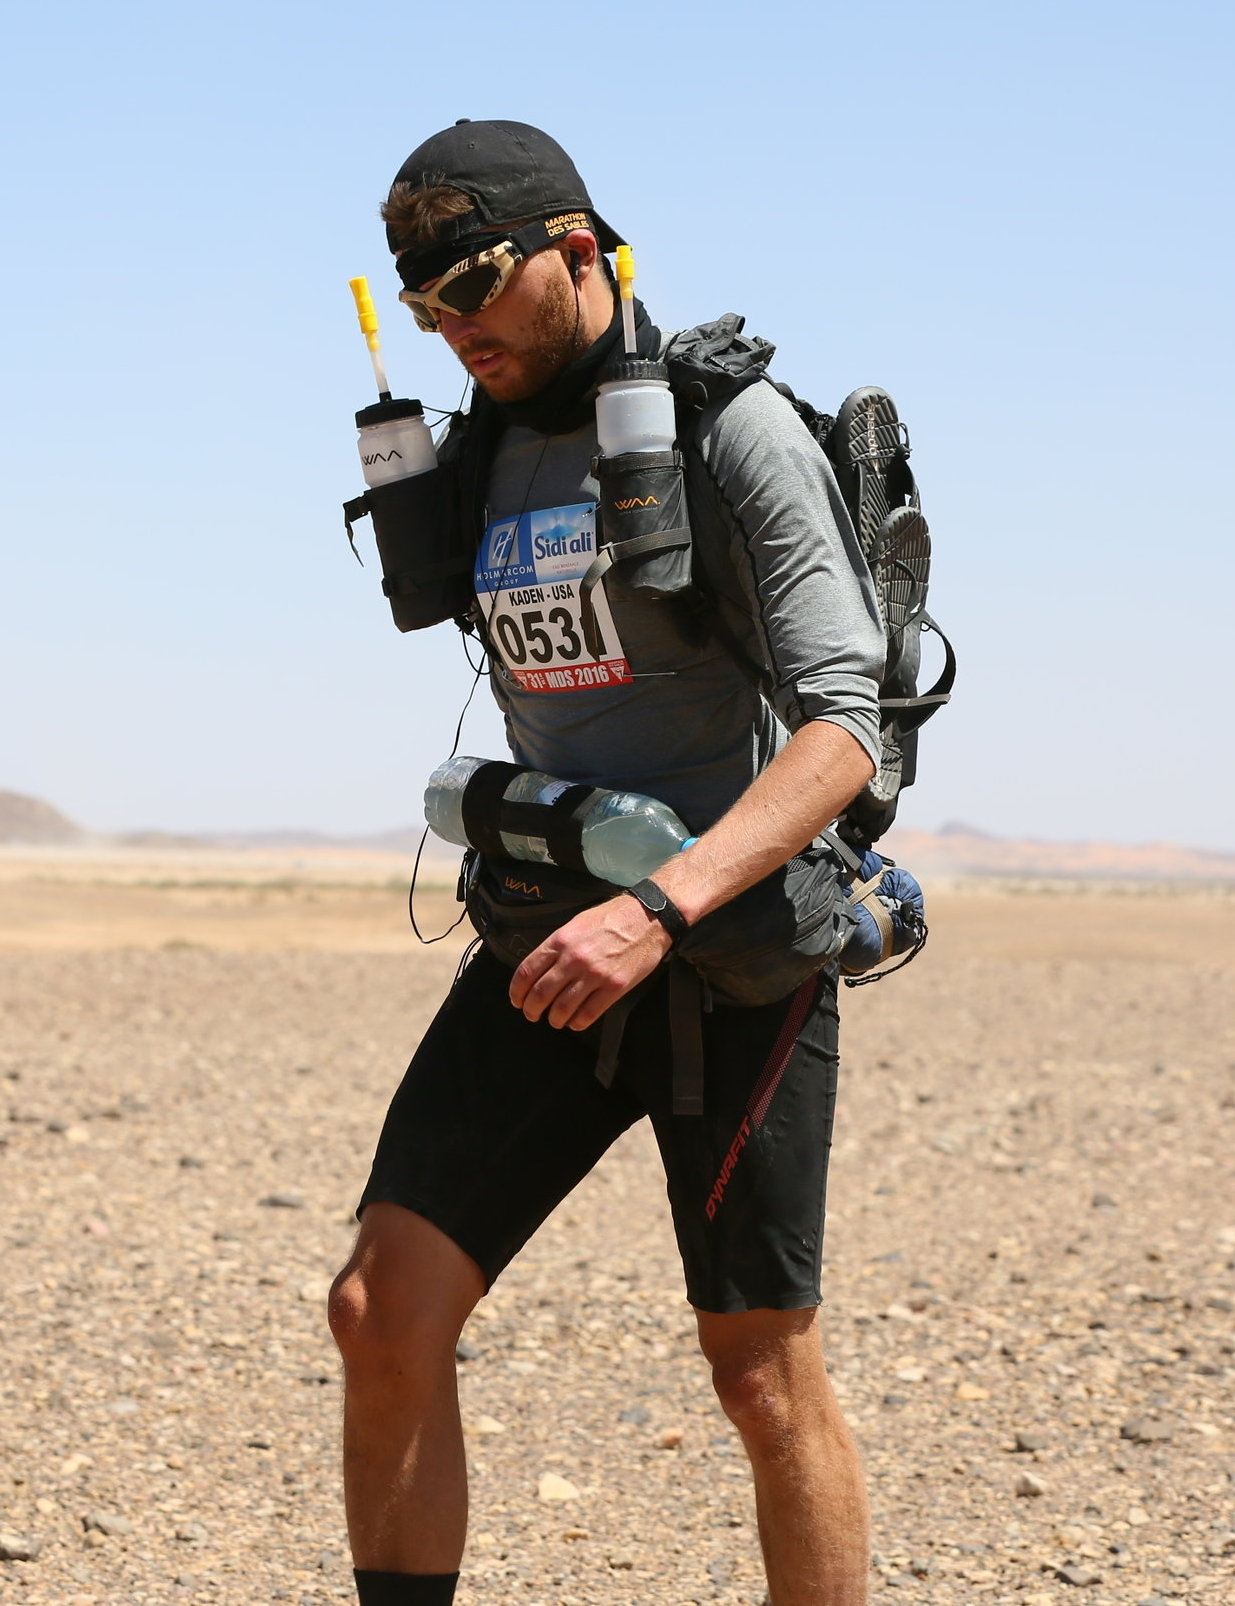 Slogging away on day 3. Runners carry everything they need to survive on their back the whole race. The only exception being a water ration.